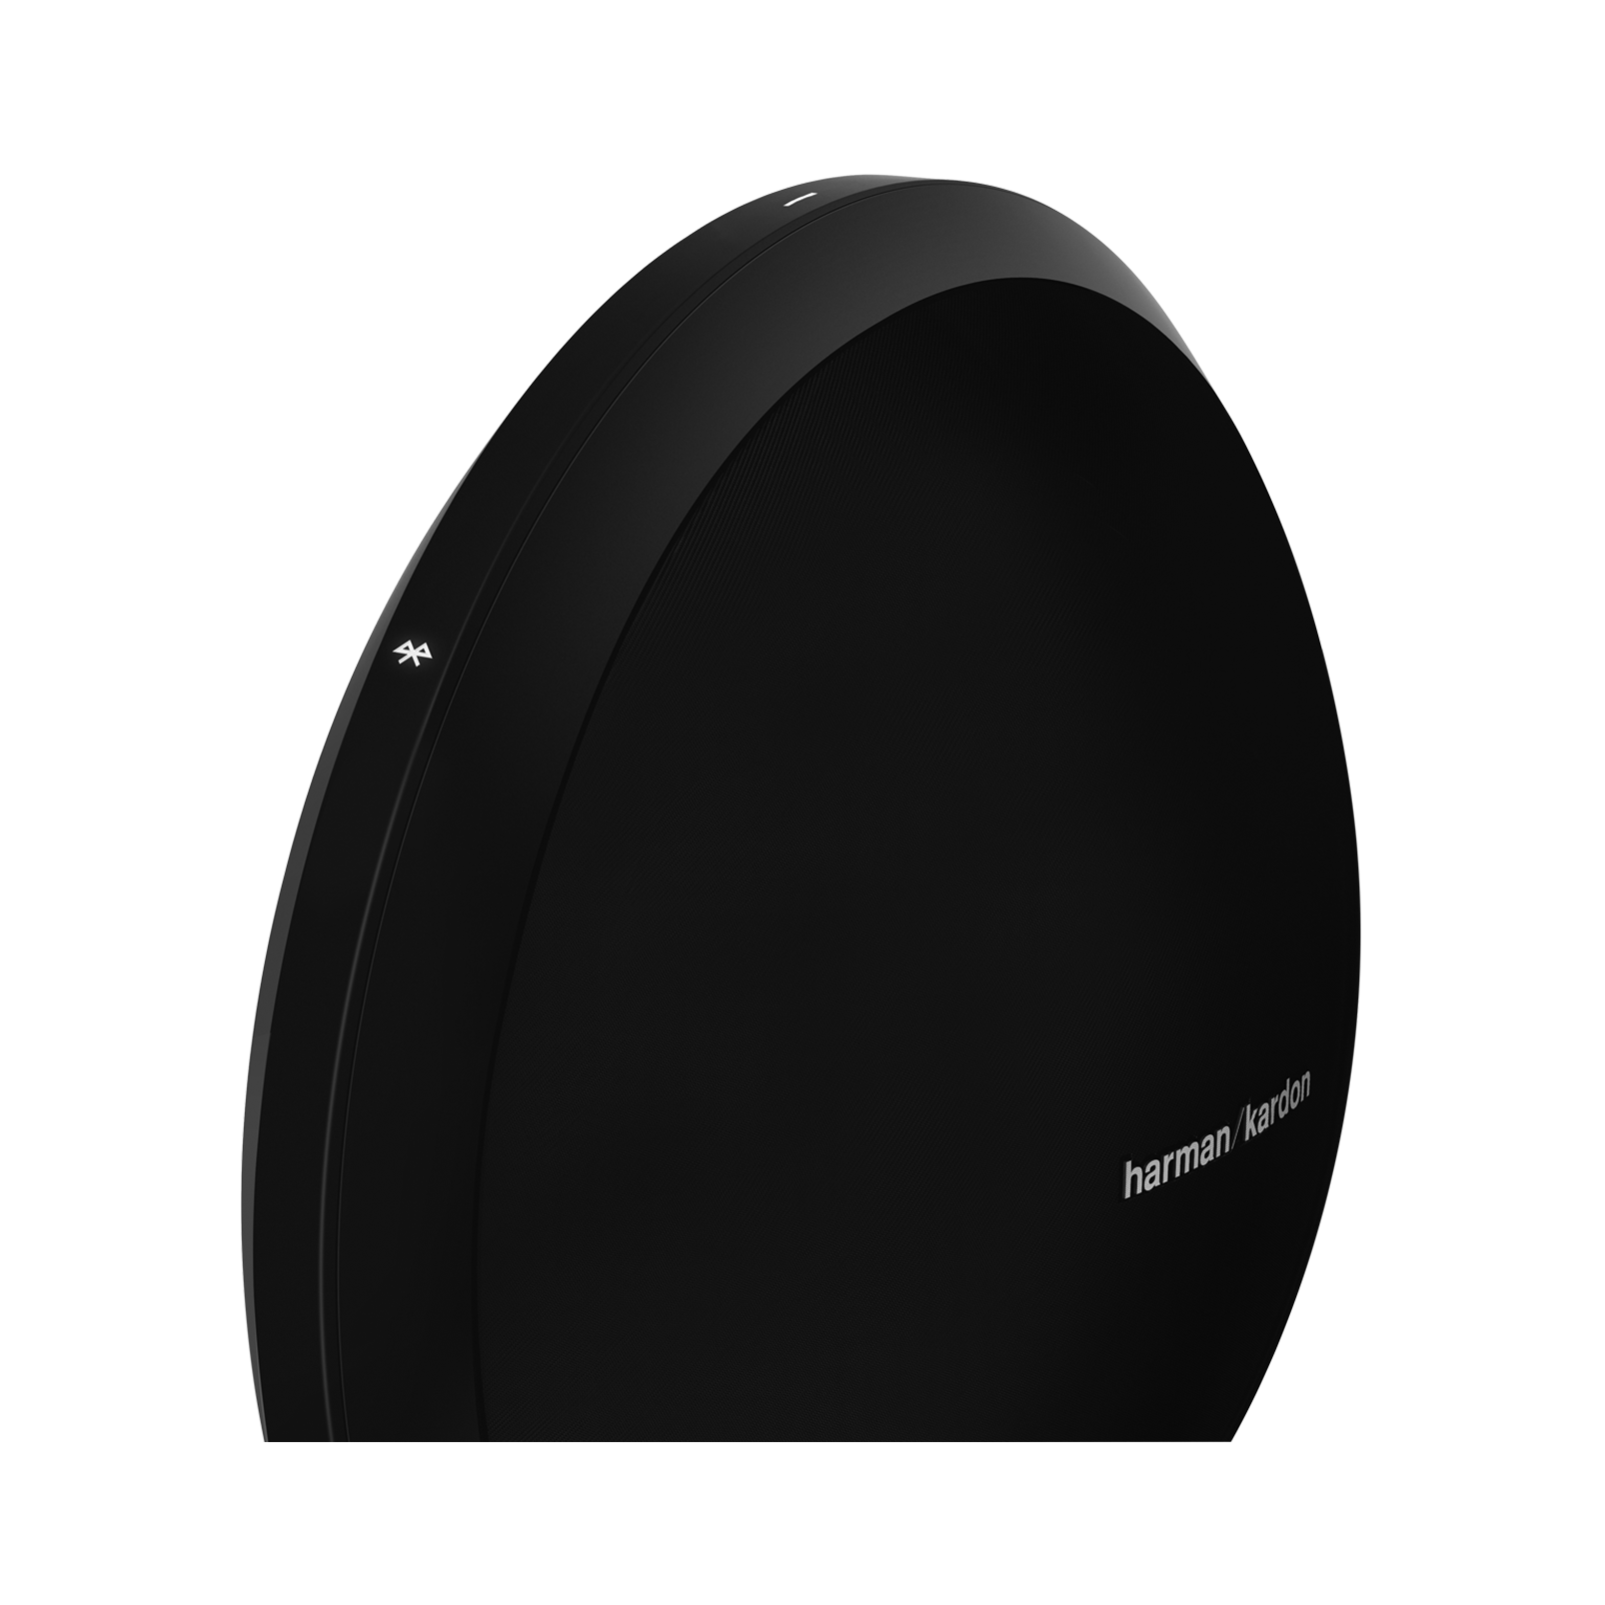 Onyx Studio - Black - Wireless Speaker System with rechargeable battery. - Detailshot 1